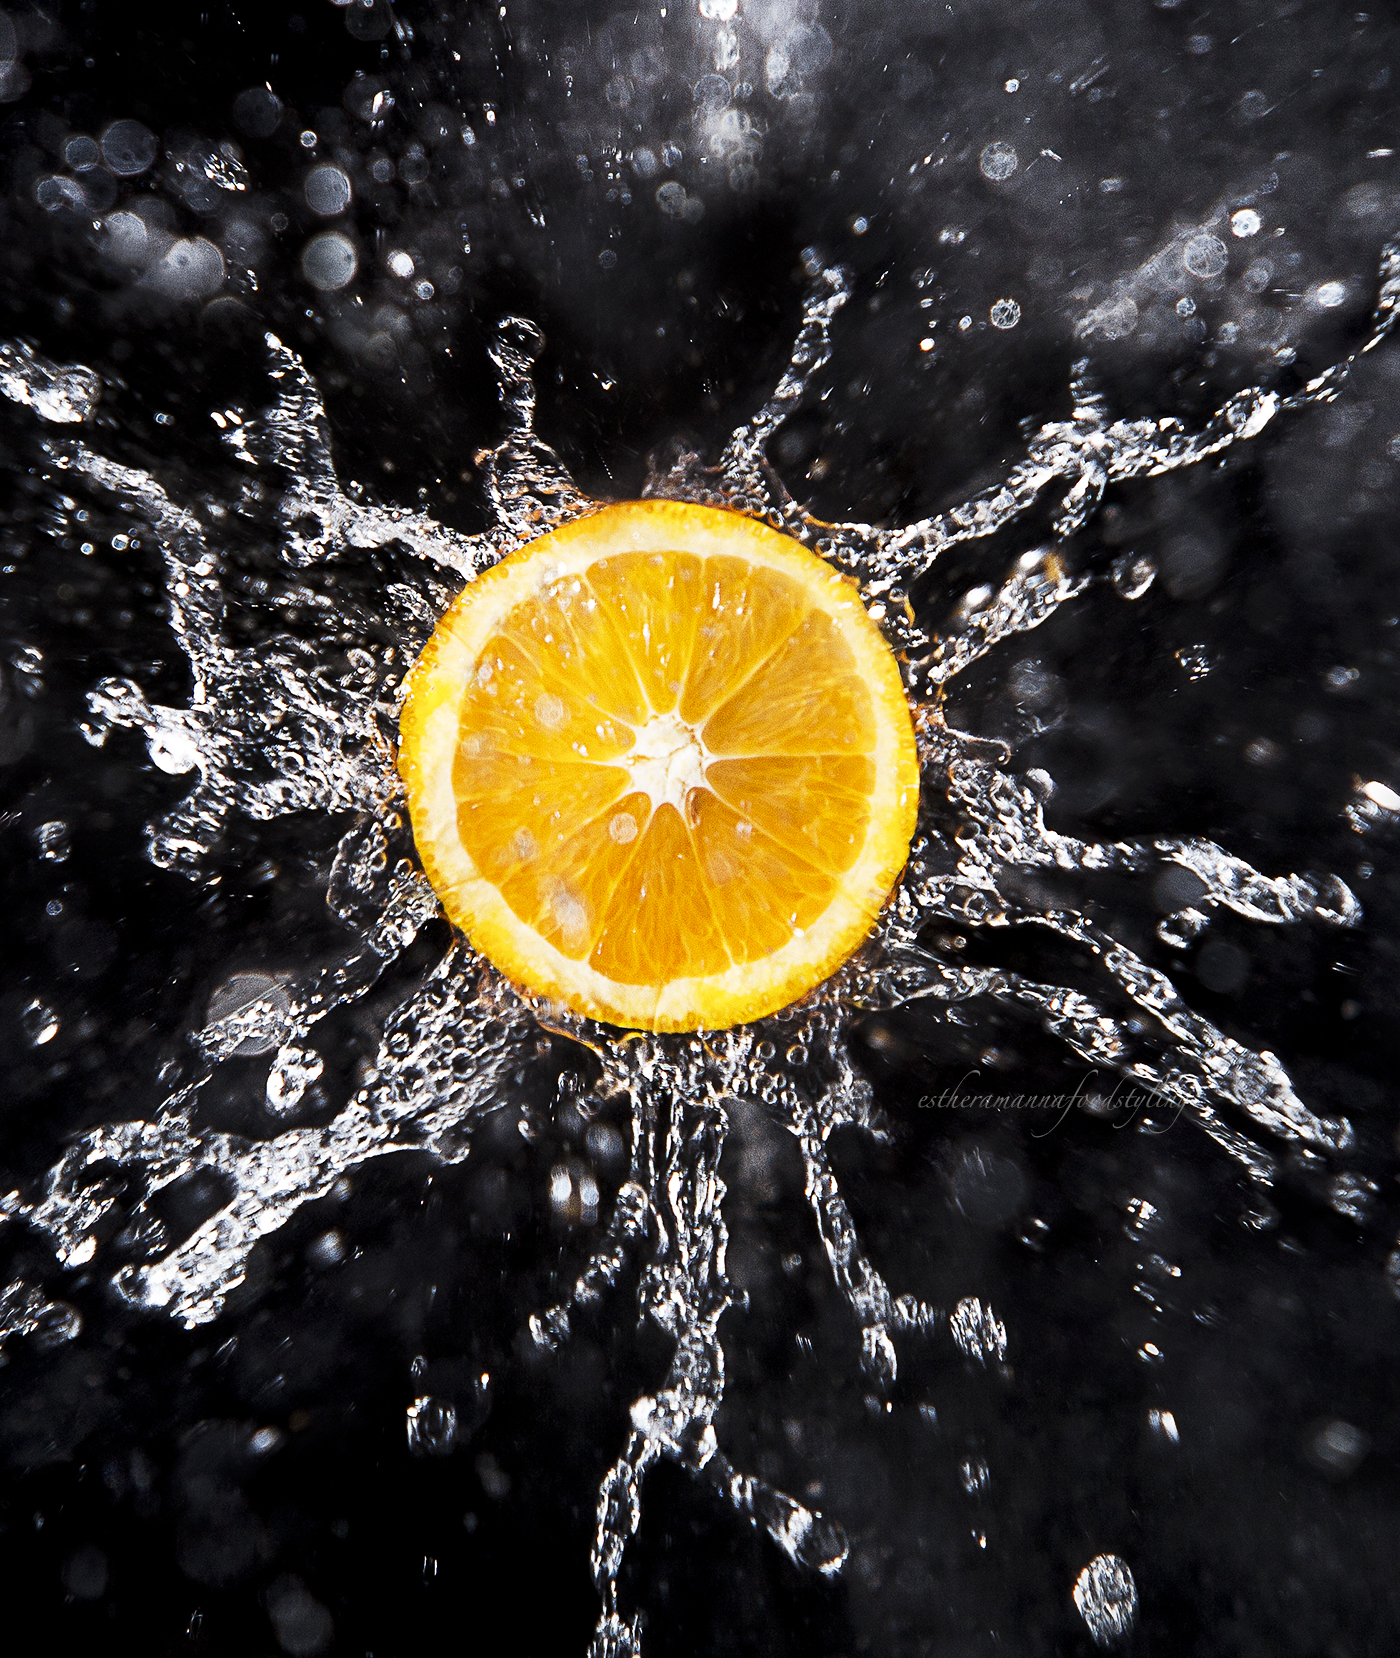 water splash over a slice of tangerine,Food stylist